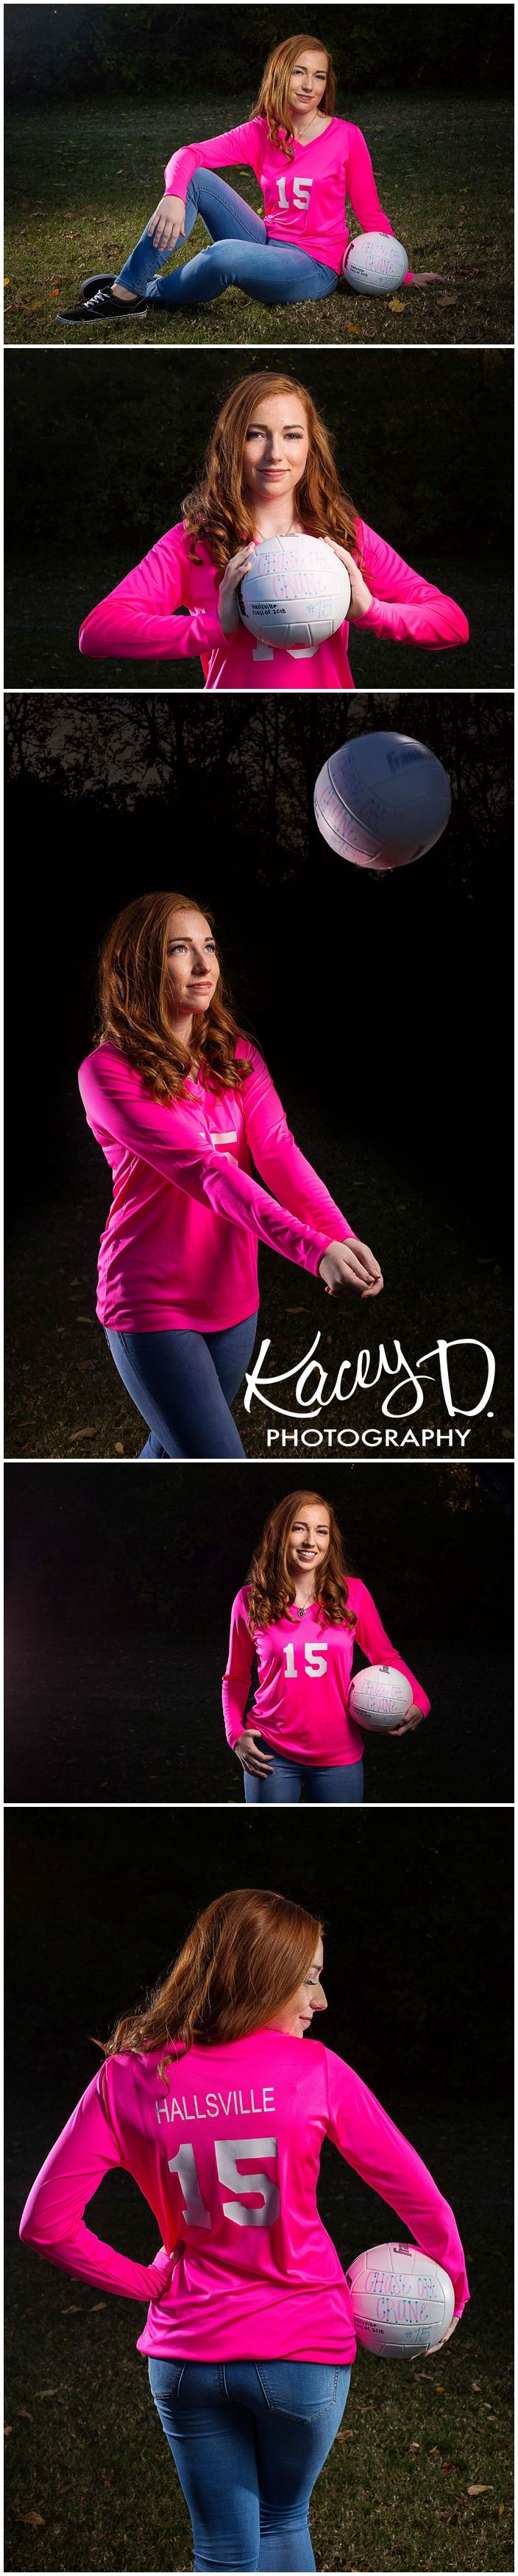 Volleyball Senior Picture Ideas - Photographer Columbia MO Kacey D Photography